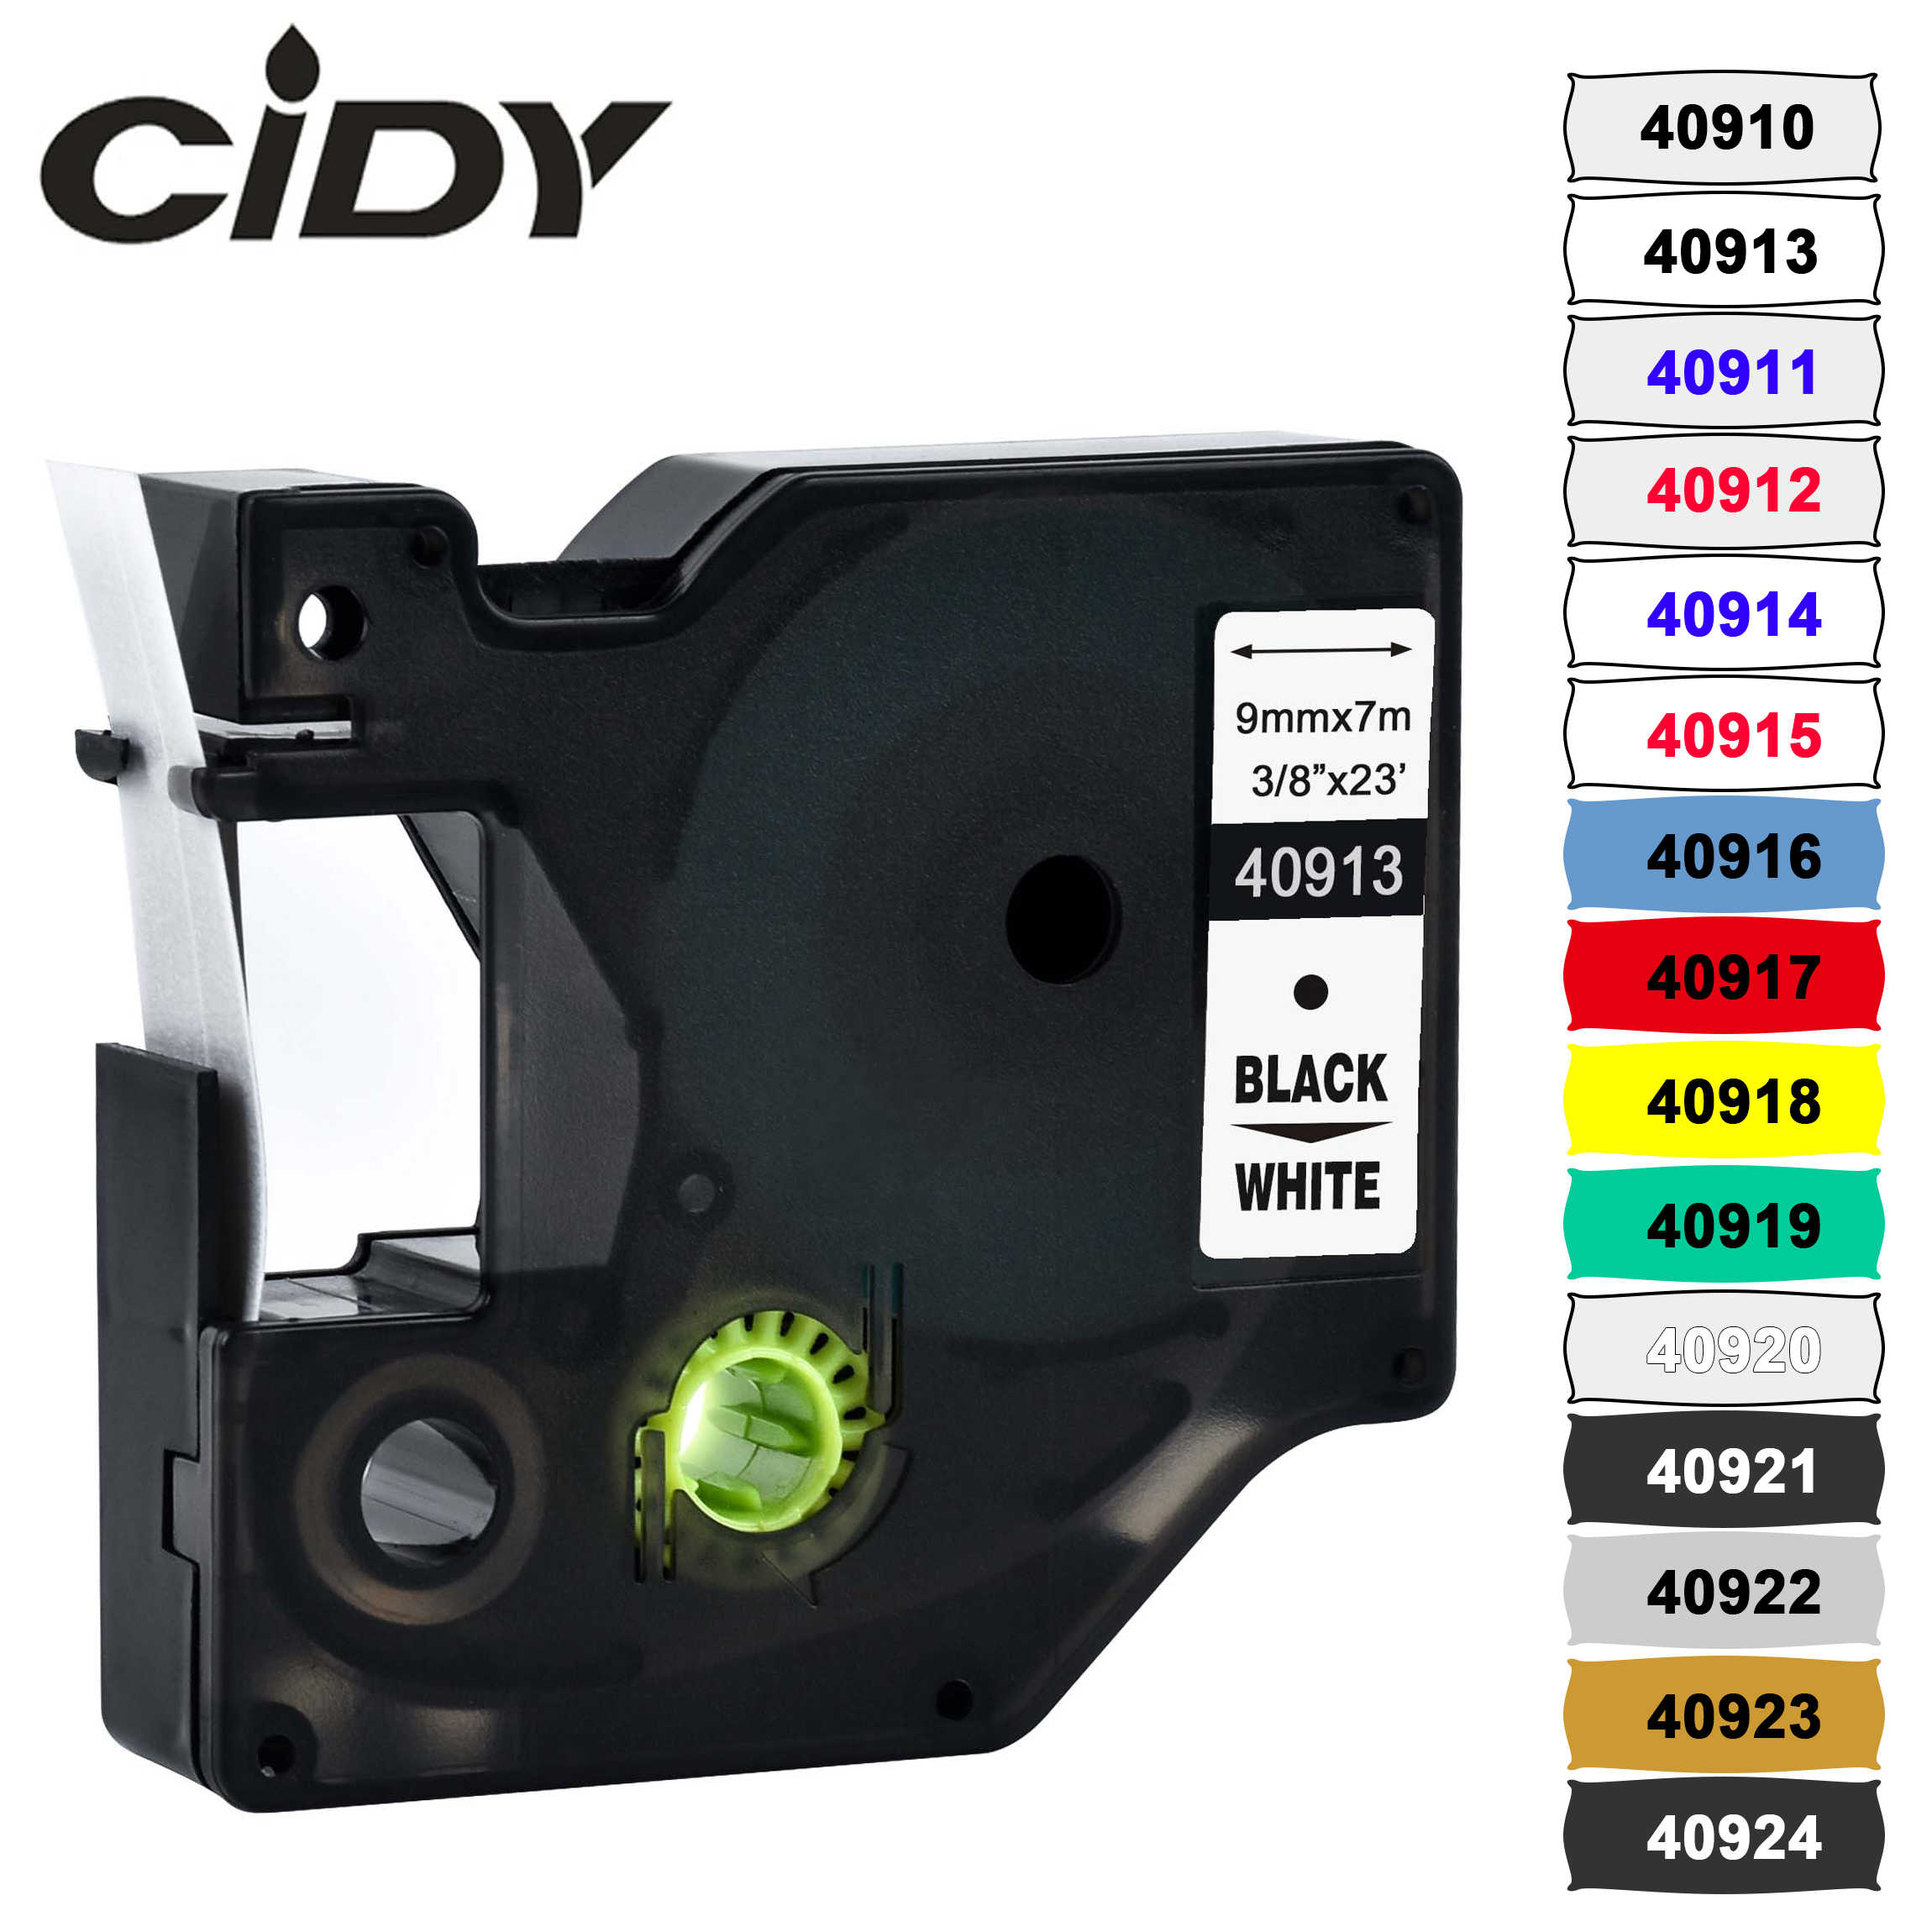 CIDY Multicolor 40913 40918 40910 9mm Black ON White LABEL TAPE ใช้ร่วมกับ DYMO D1 Manager 45013 DYMO LM160 LM280 DYMO PNP